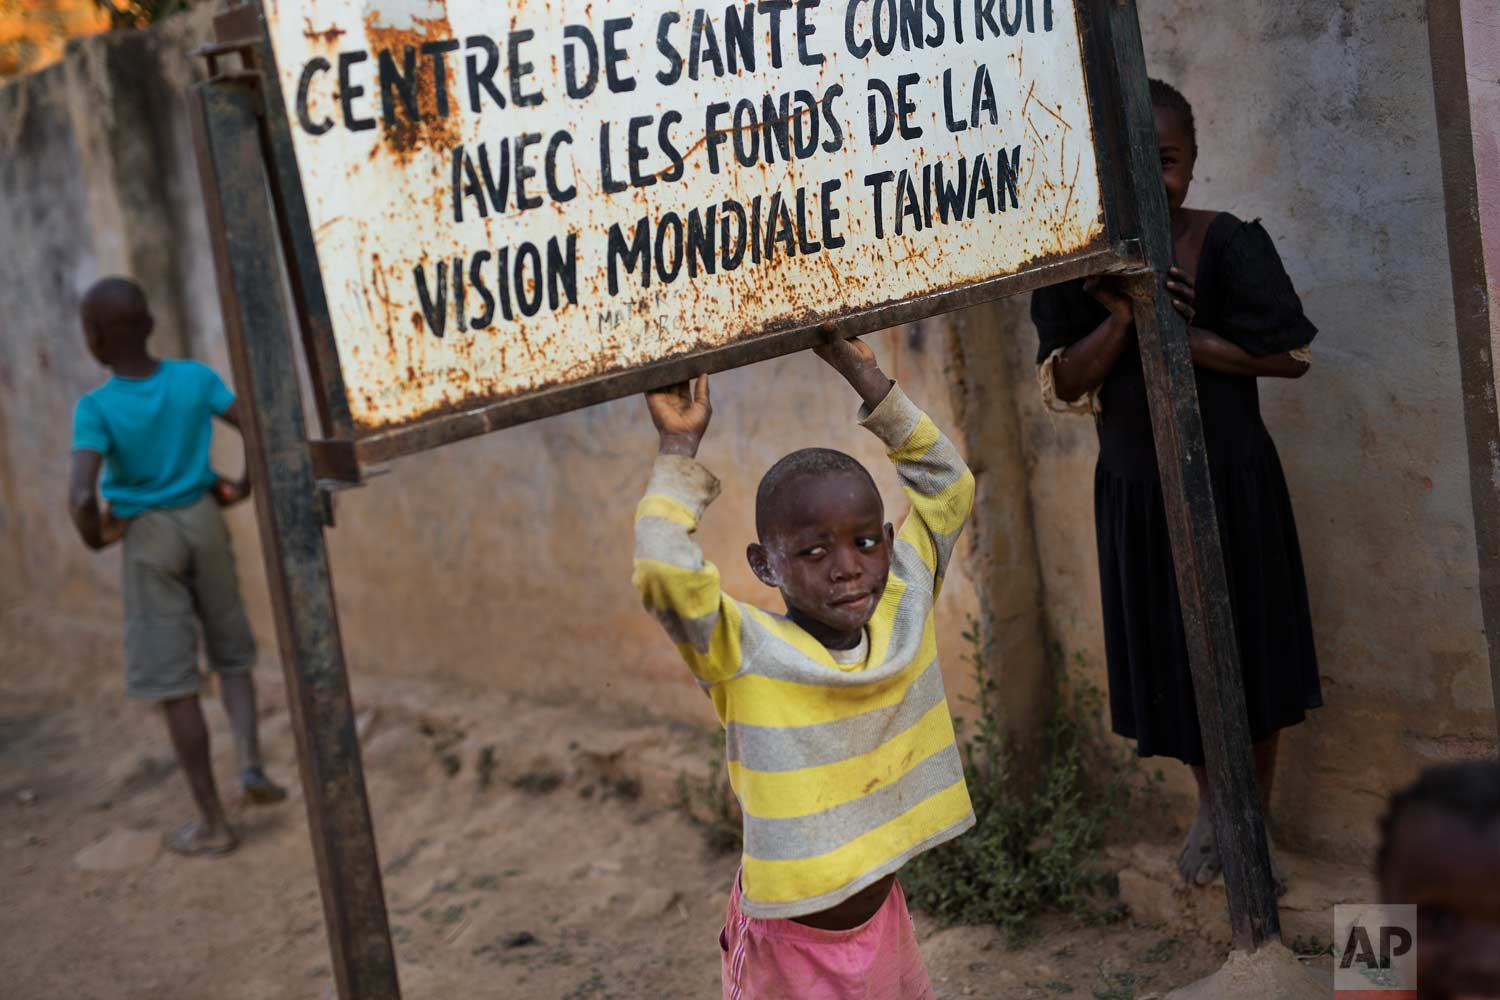 """A child plays under a sign reading, """"health center built with funding from Taiwan World Vision Funds"""" at the Mama Wa Mapendo clinic in Lubumbashi, Democratic Republic of the Congo on Tuesday, Aug. 14, 2018. (AP Photo/Jerome Delay)"""